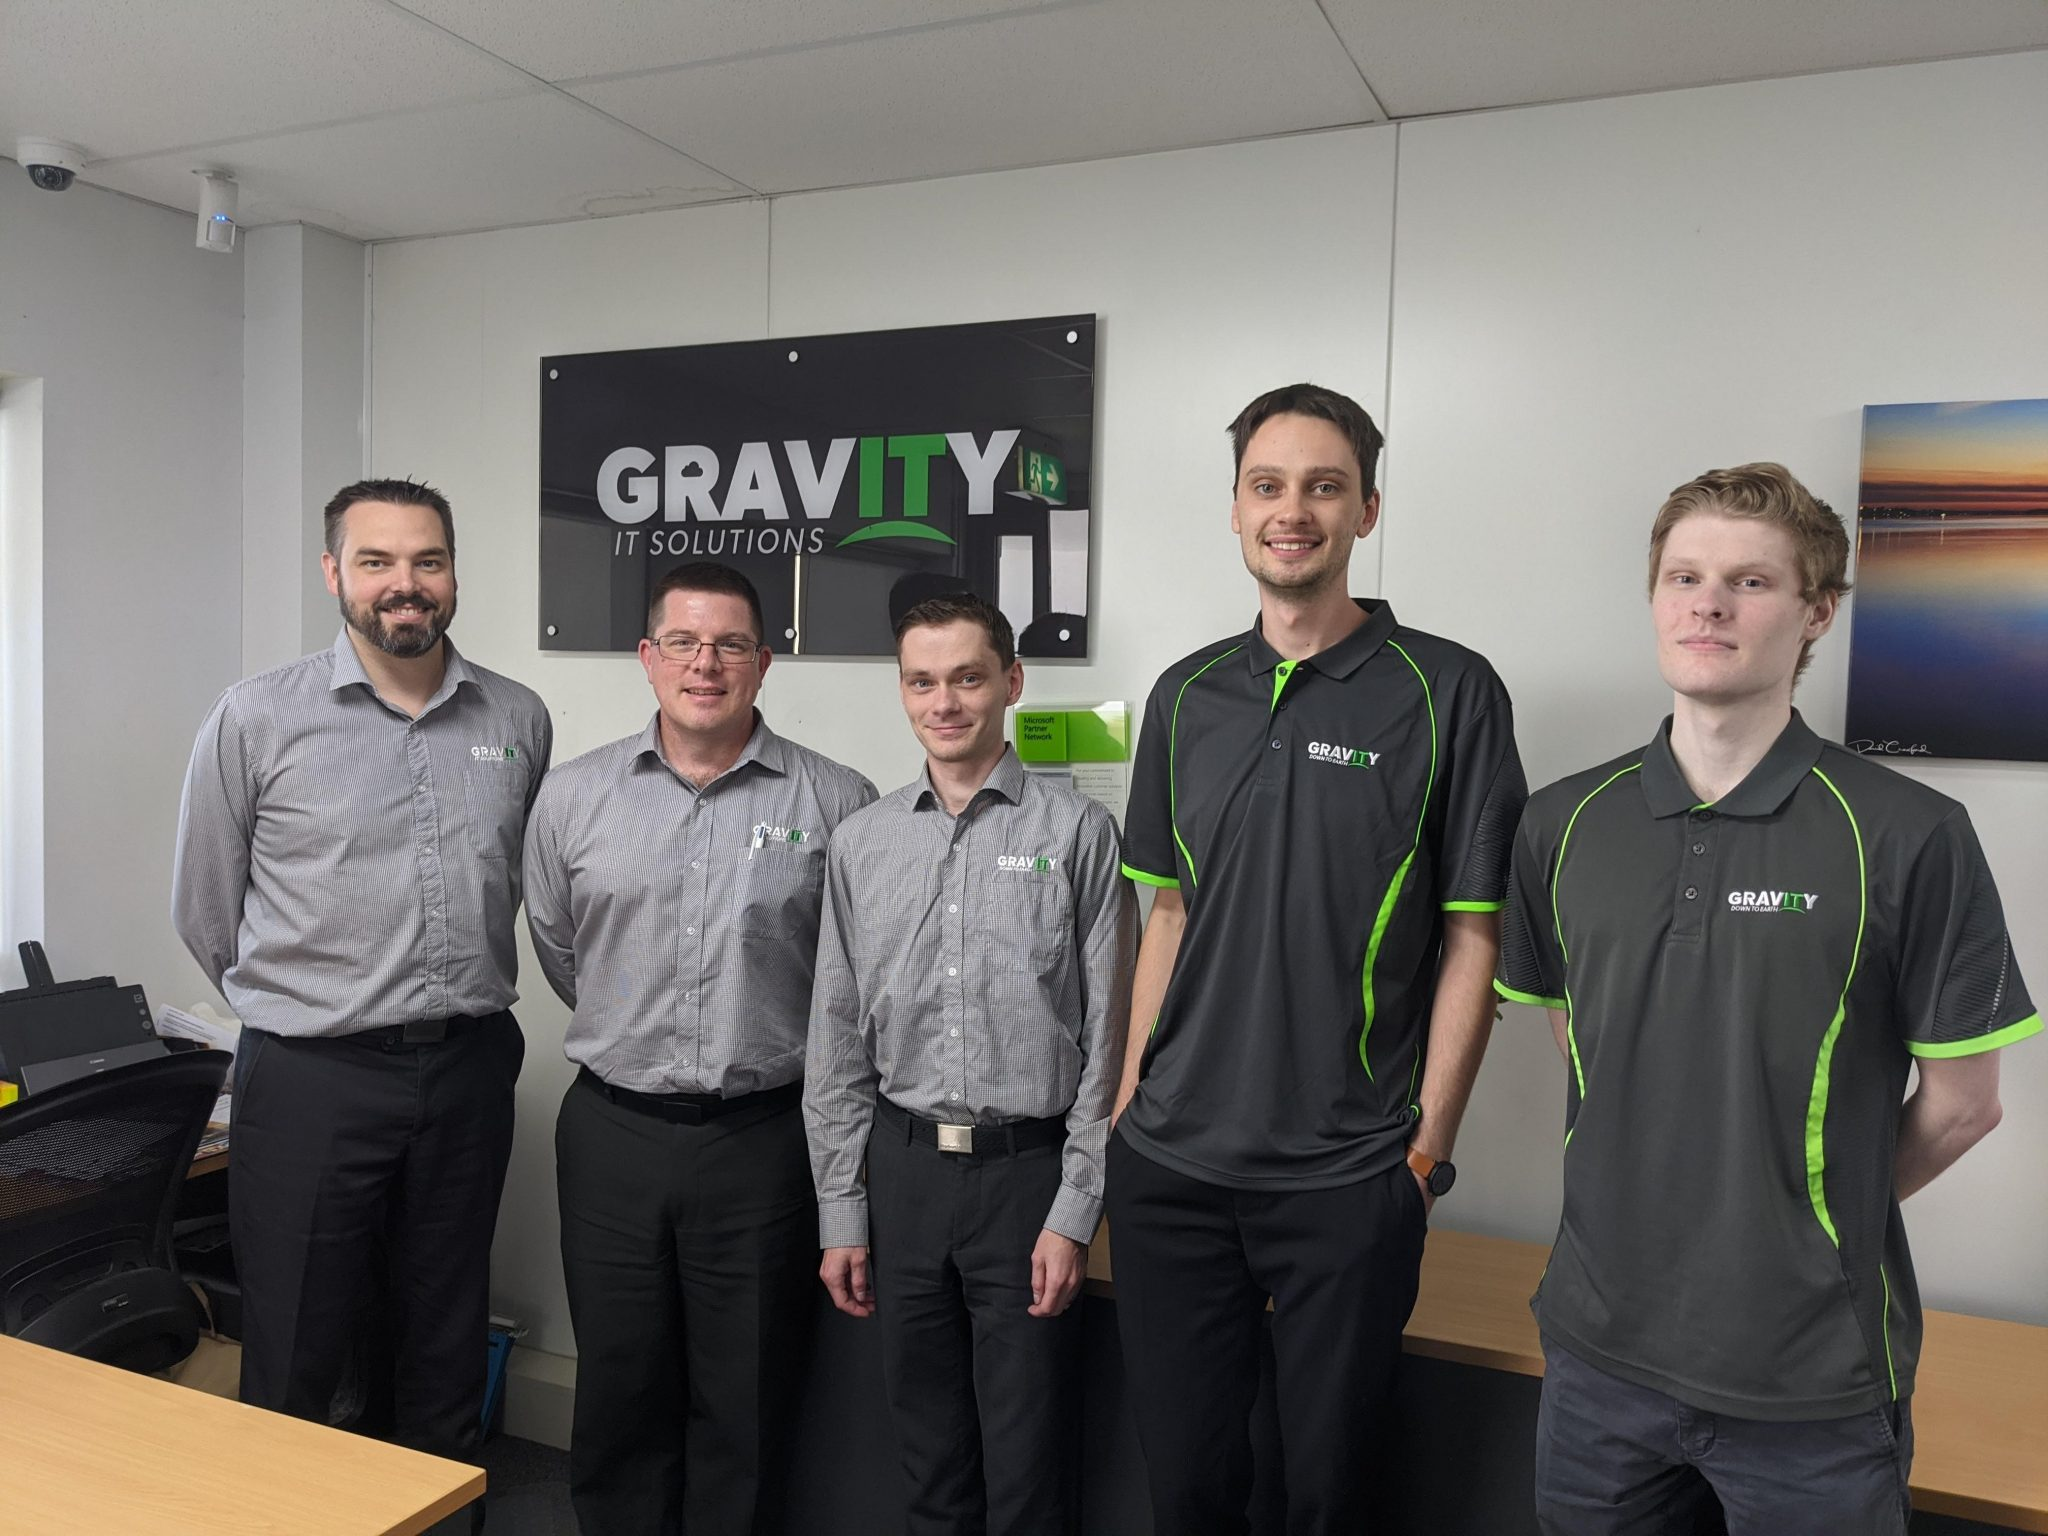 Gravity IT team